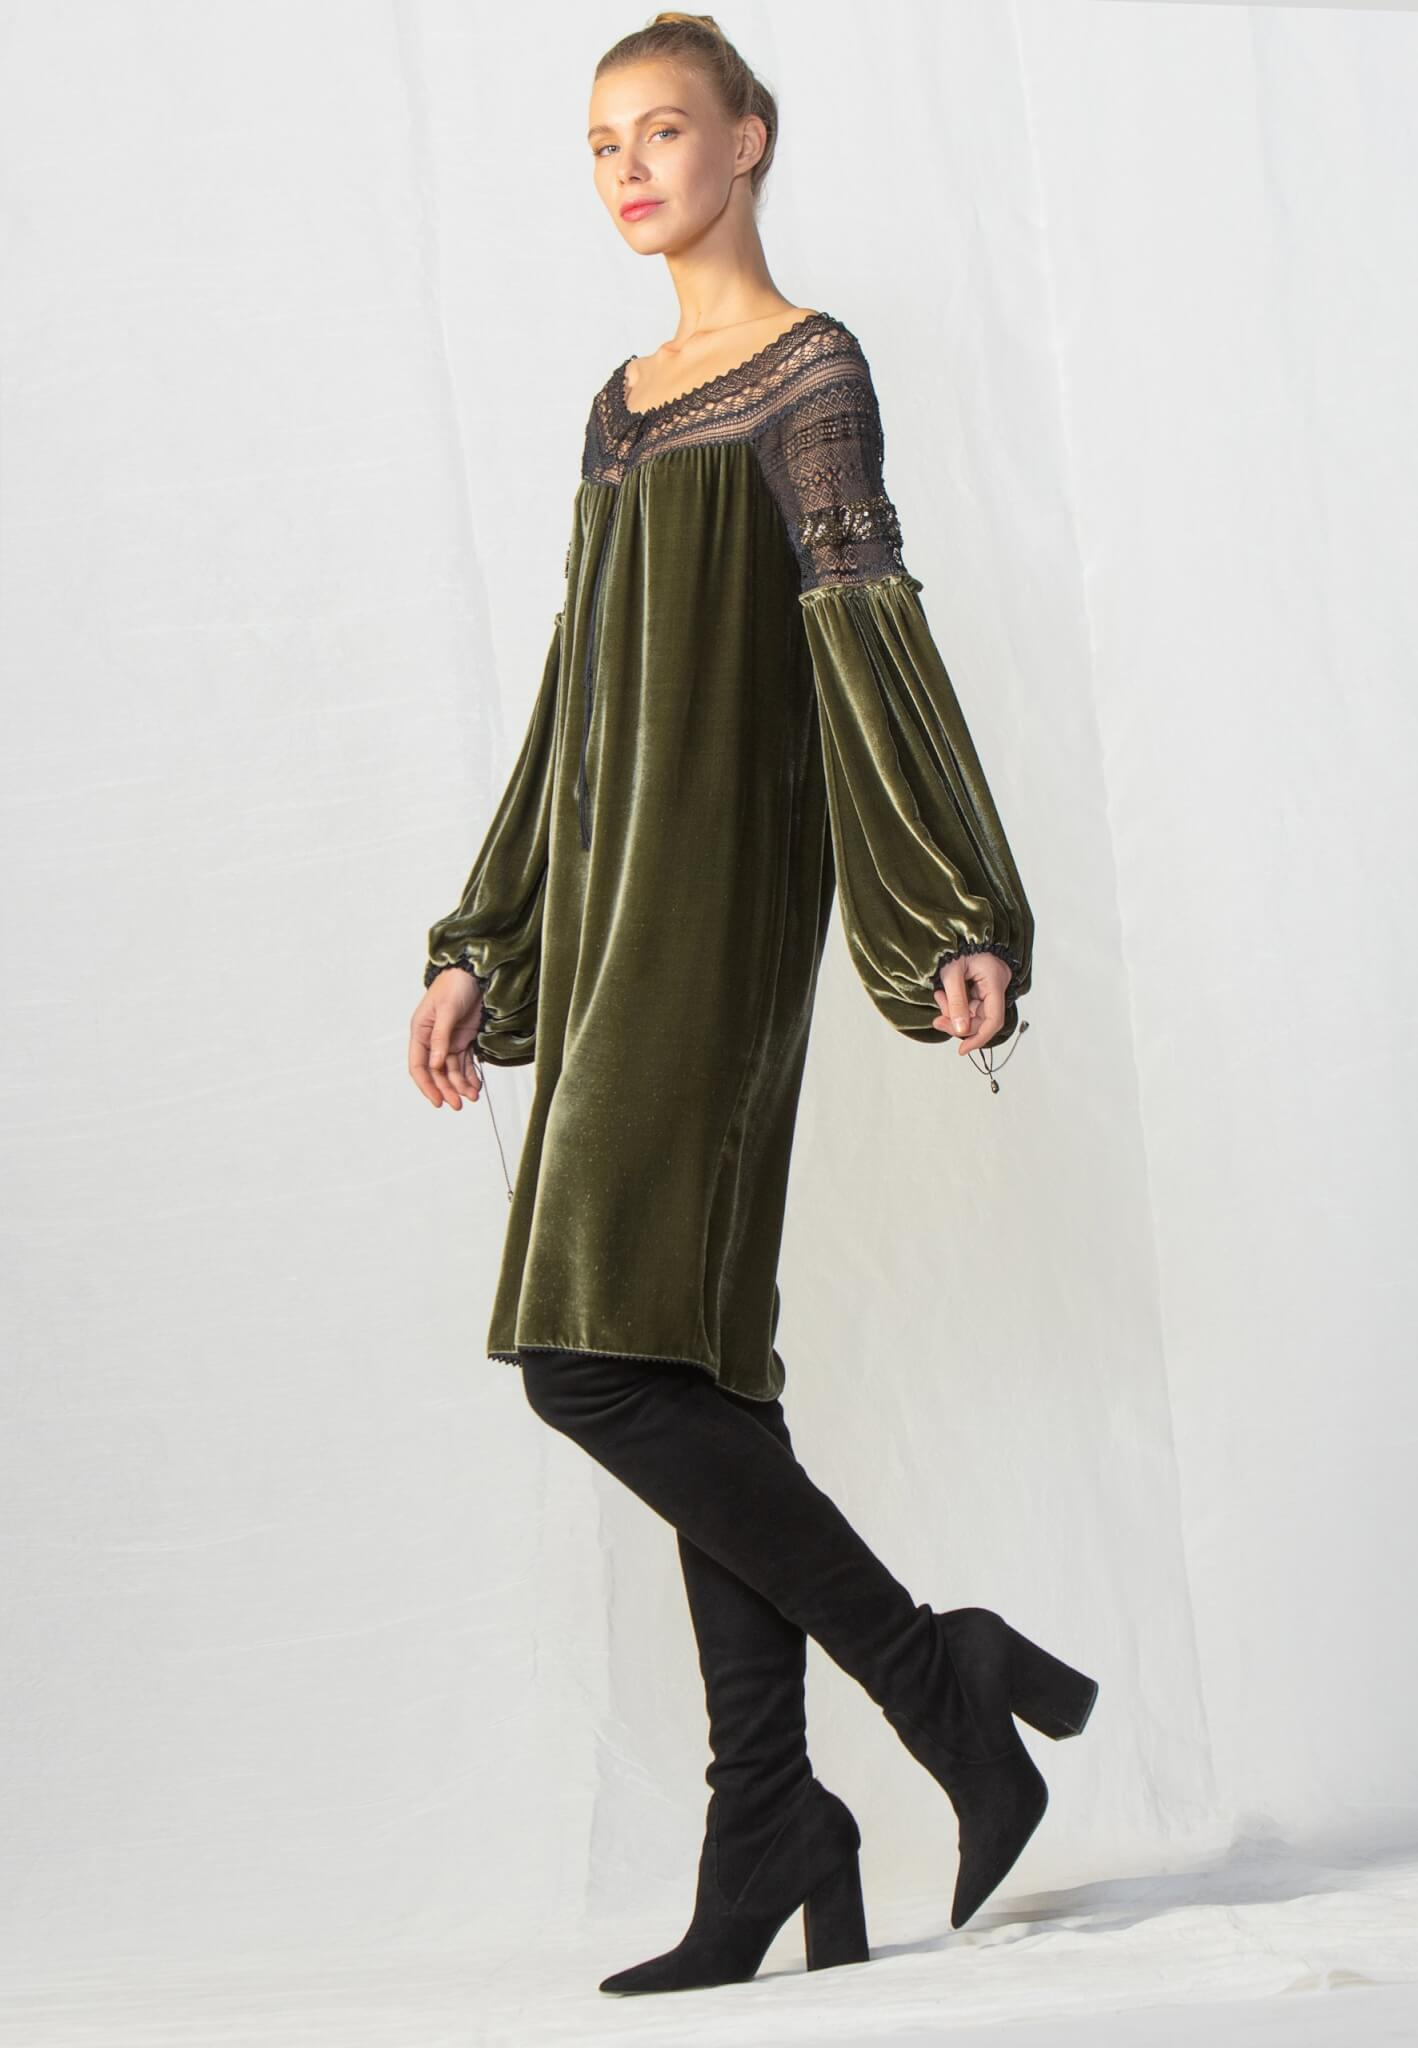 Velour dress with lace and beads